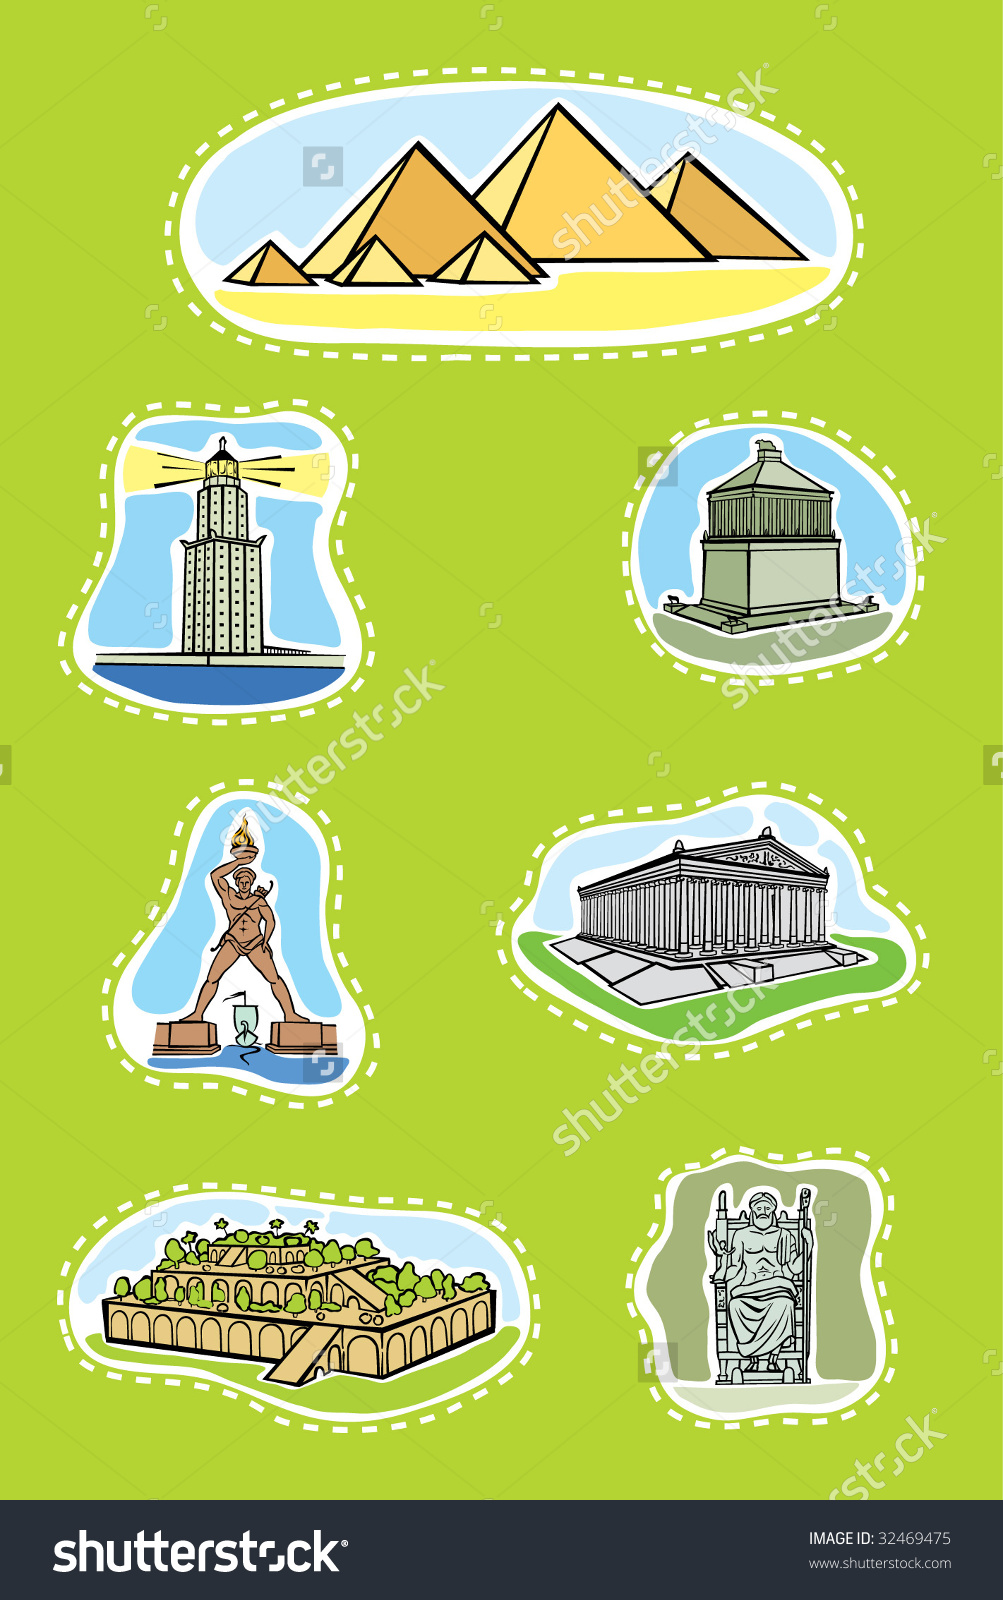 7 wonders ancient world clipart.